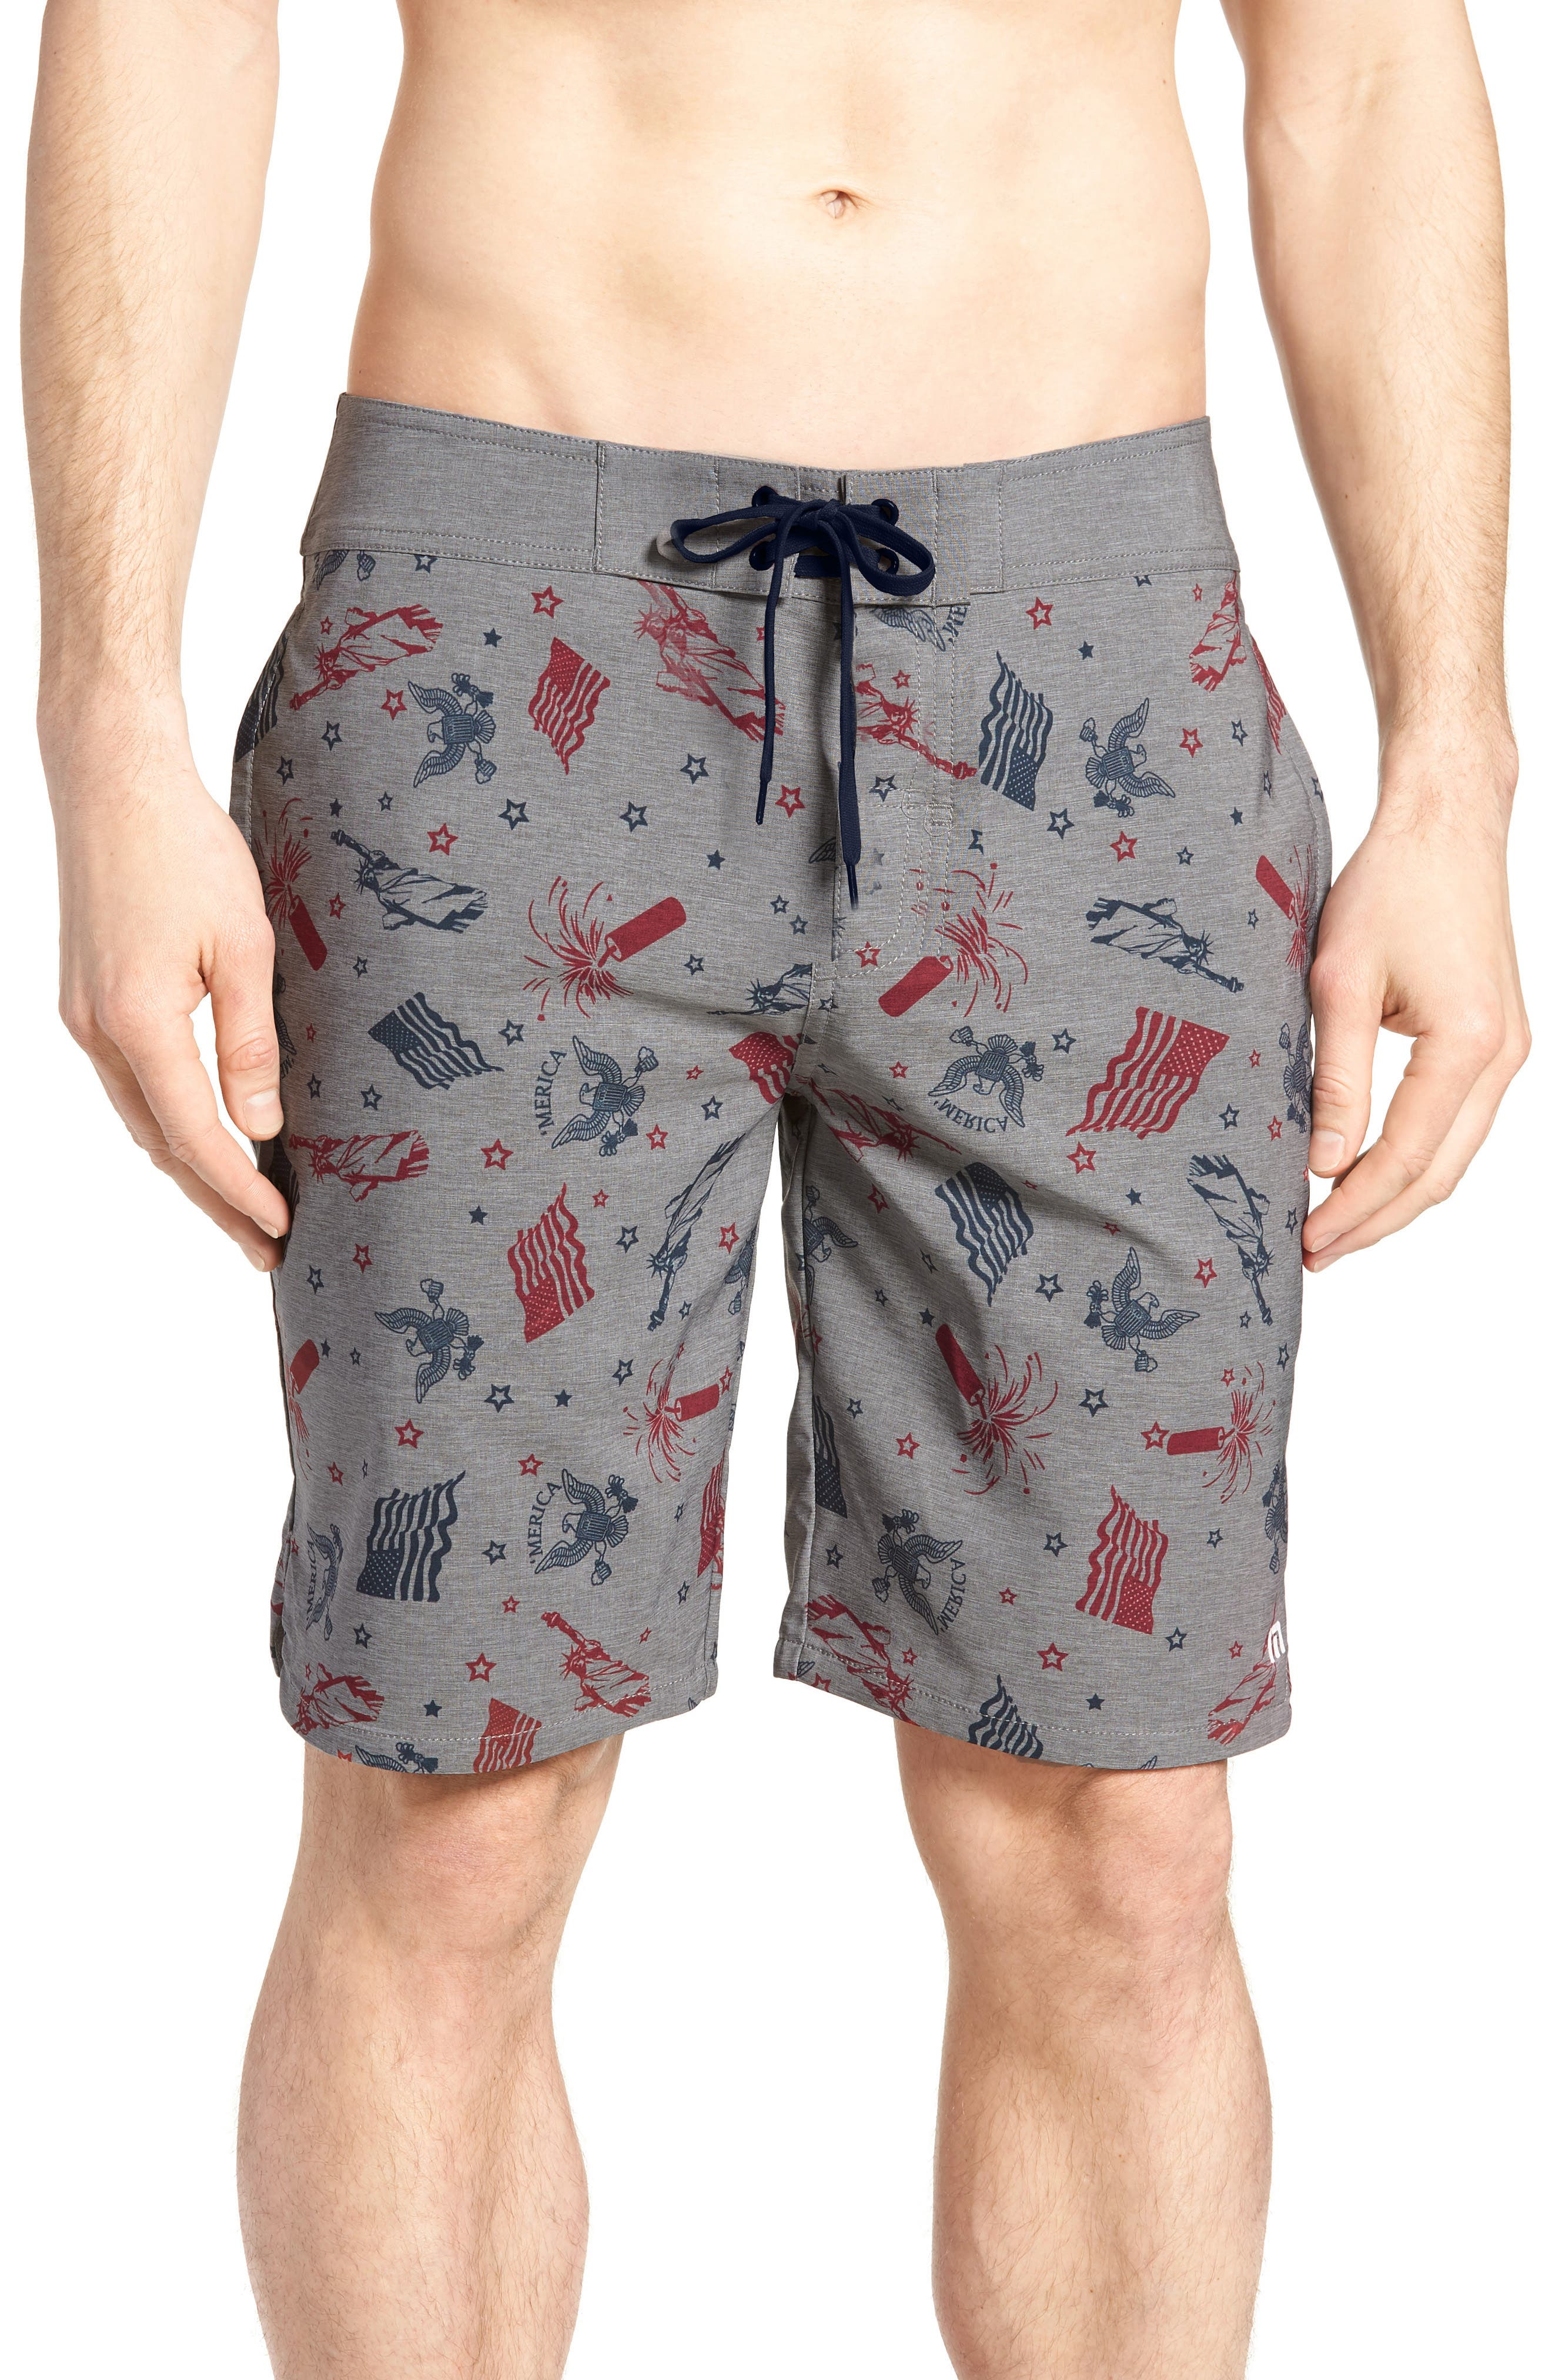 Liberty Swim Trunks,                             Main thumbnail 1, color,                             020